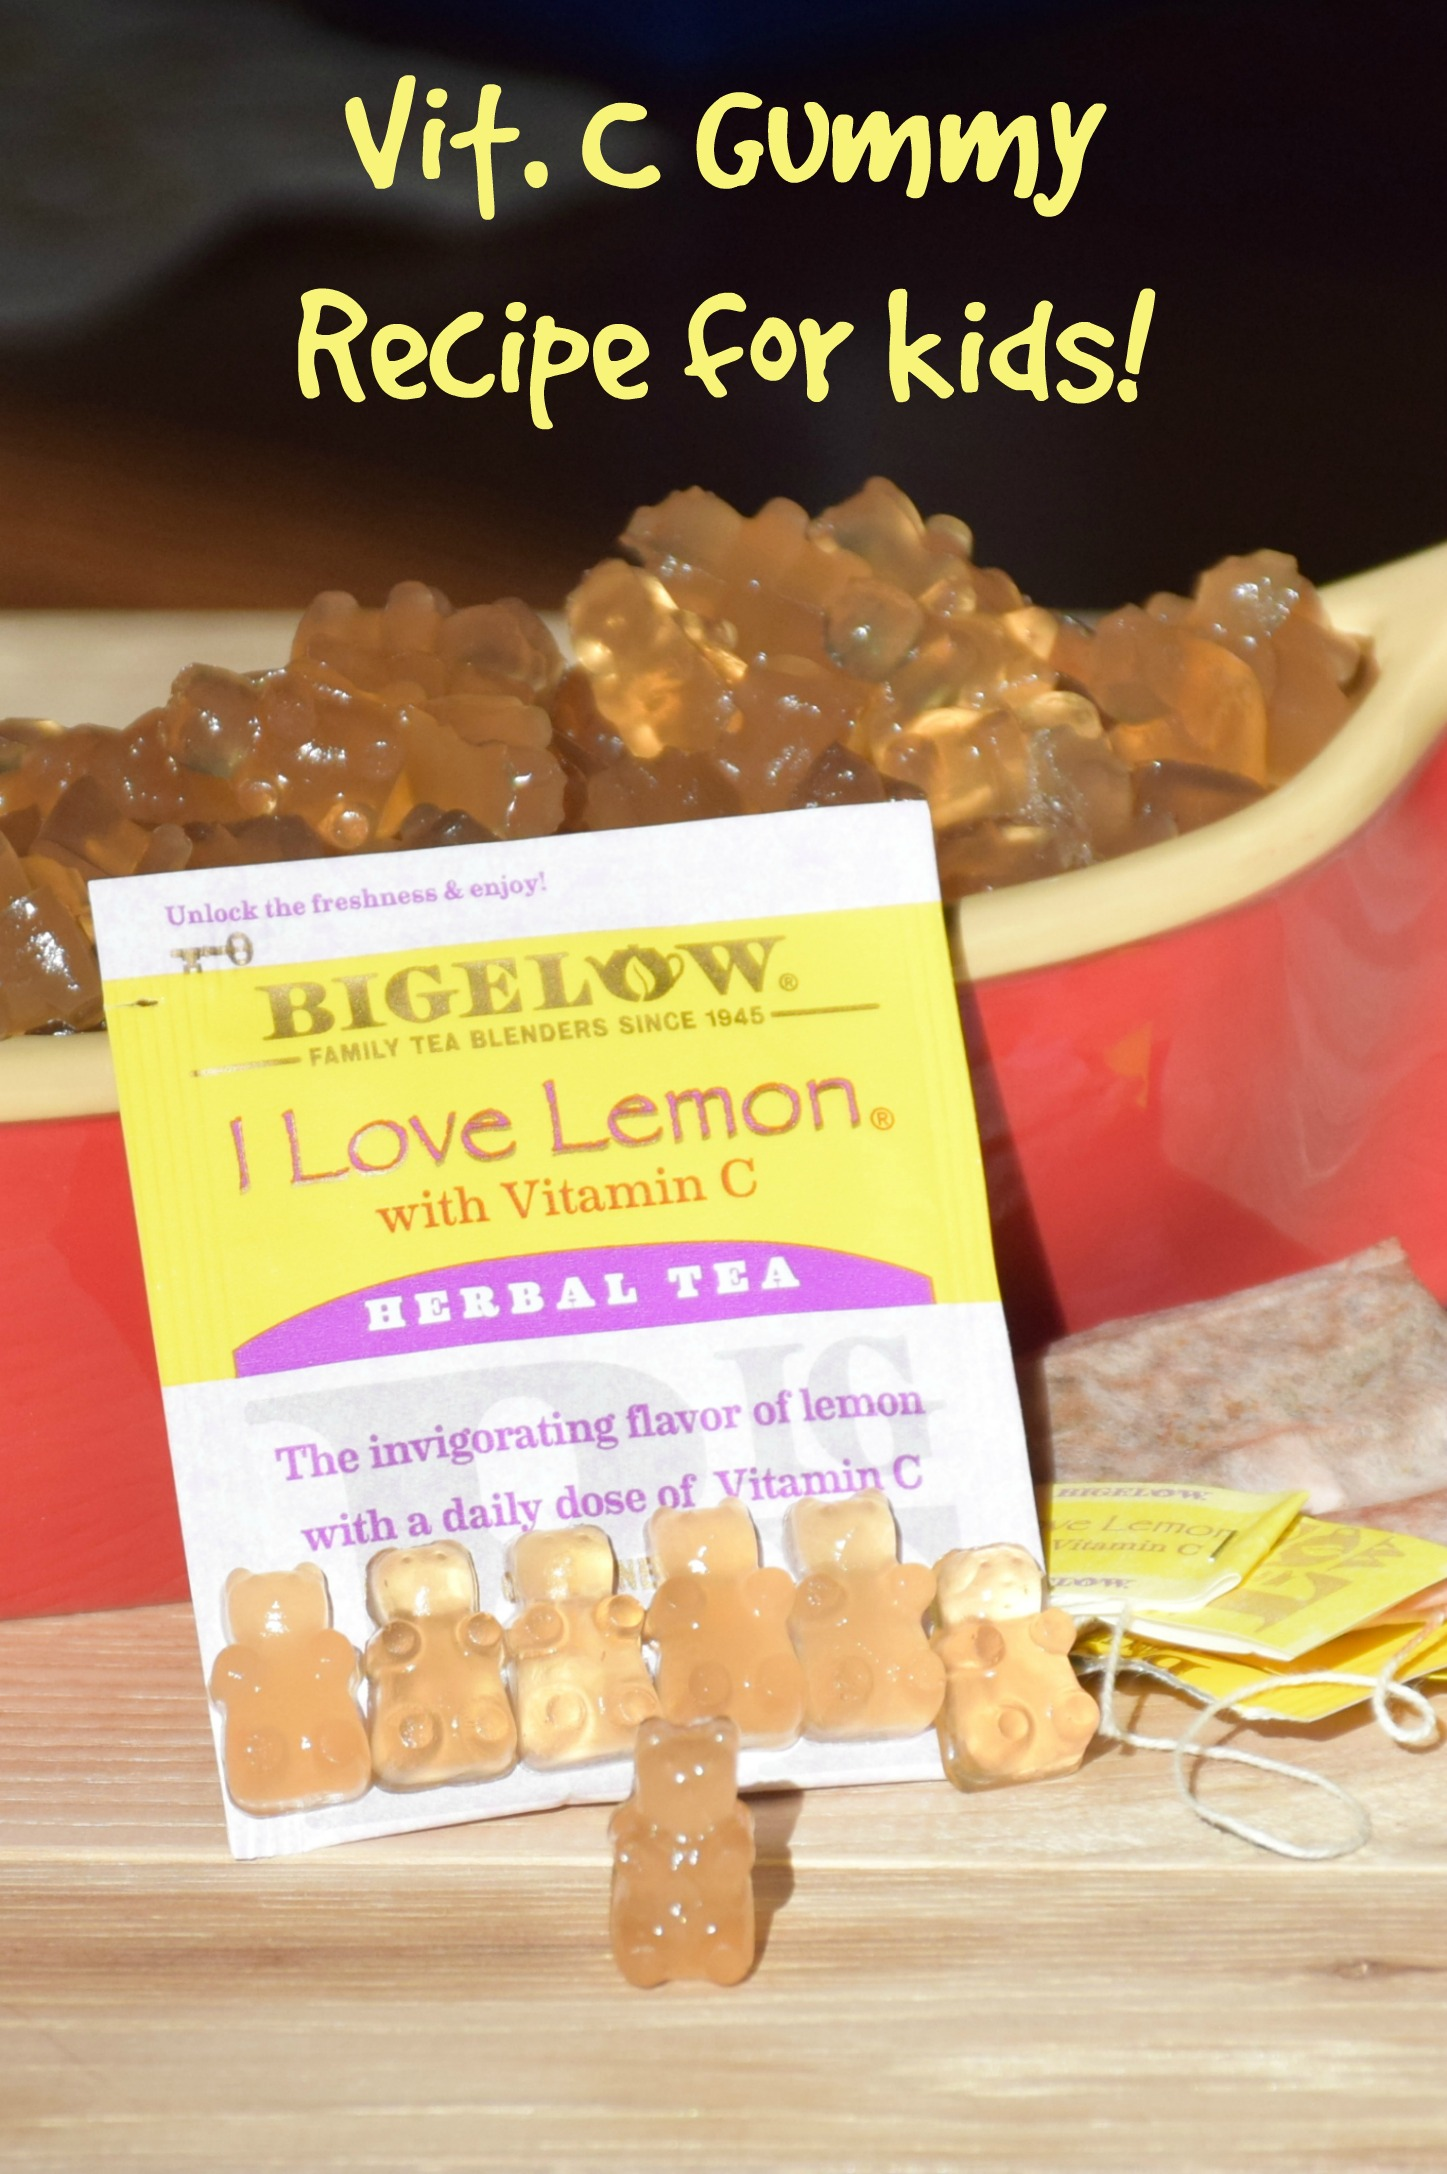 Looking for a preservative, dye and corn sugar free vitamin c for toddlers? Try this vitamin C gummy recipe for toddlers quick and easy to make and kids love them! #MeAndMyTea #ad #cbias